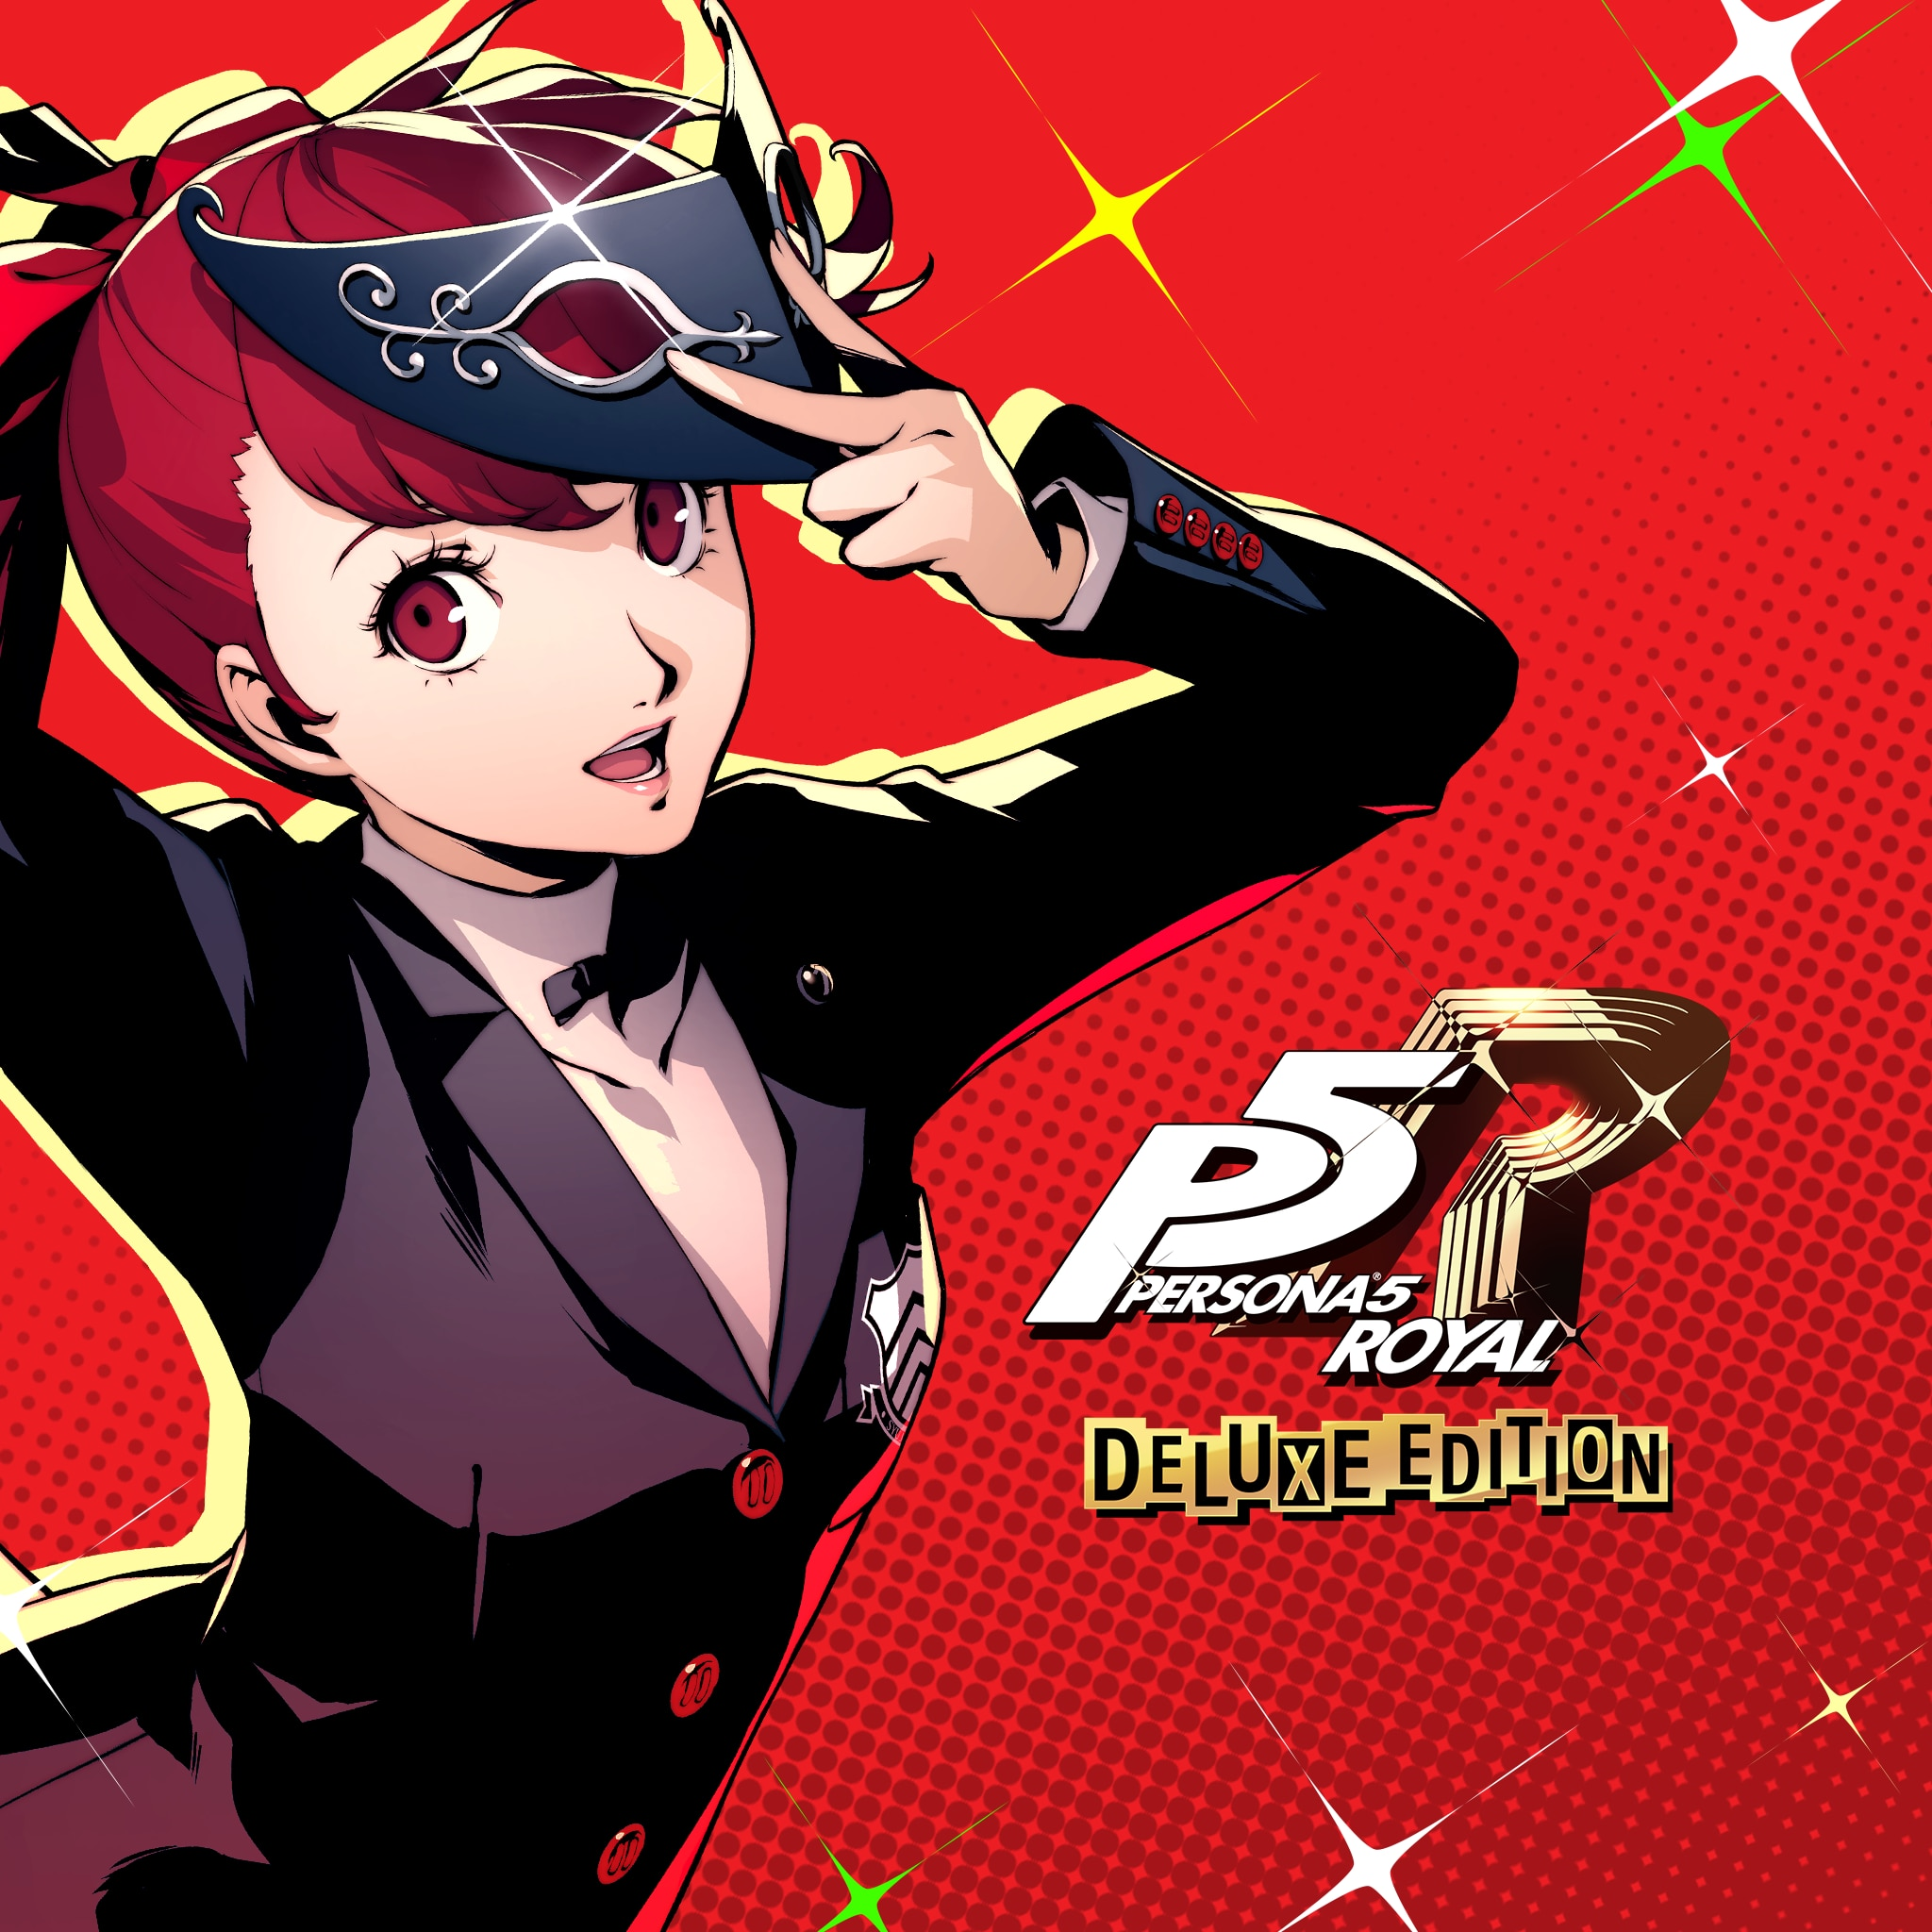 Persona®5 Royal Deluxe Edition